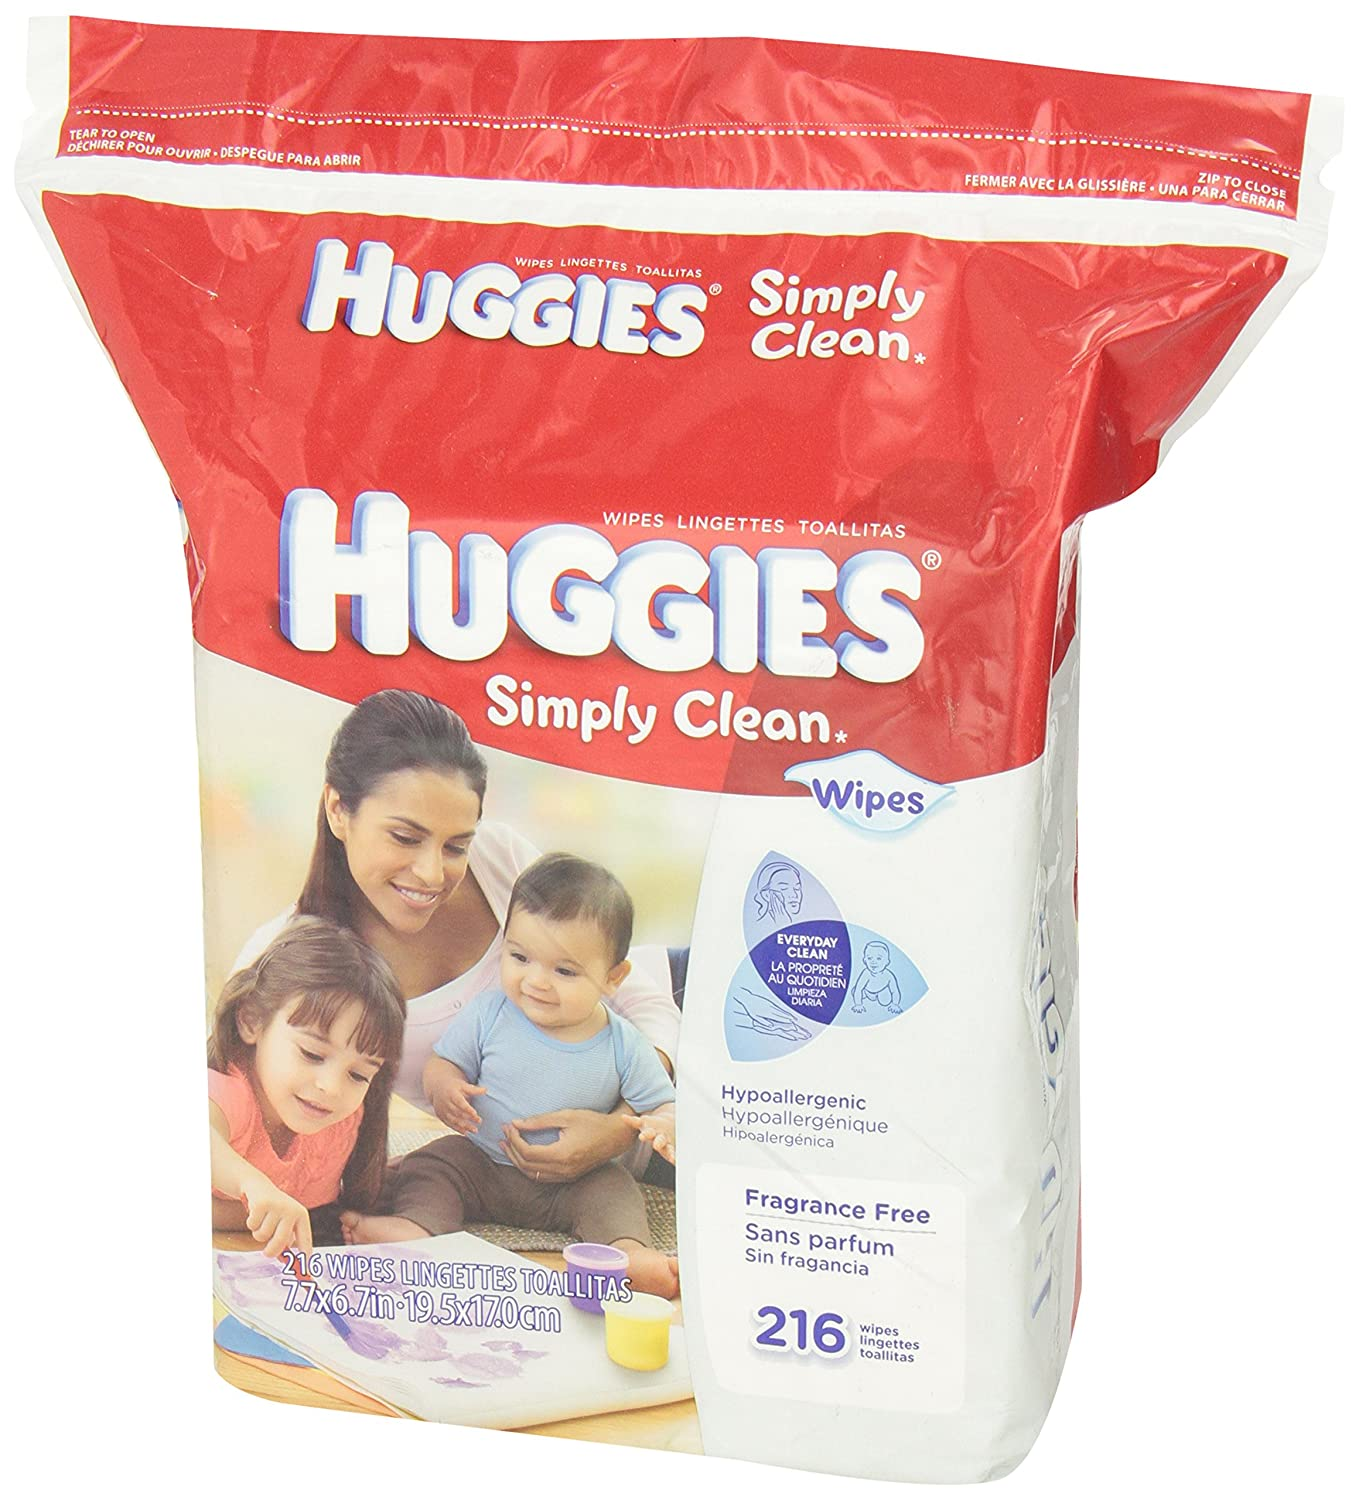 Huggies Simply Clean Fragrance Free Baby Wipes Refill, 216 Count: Amazon.com: Grocery & Gourmet Food